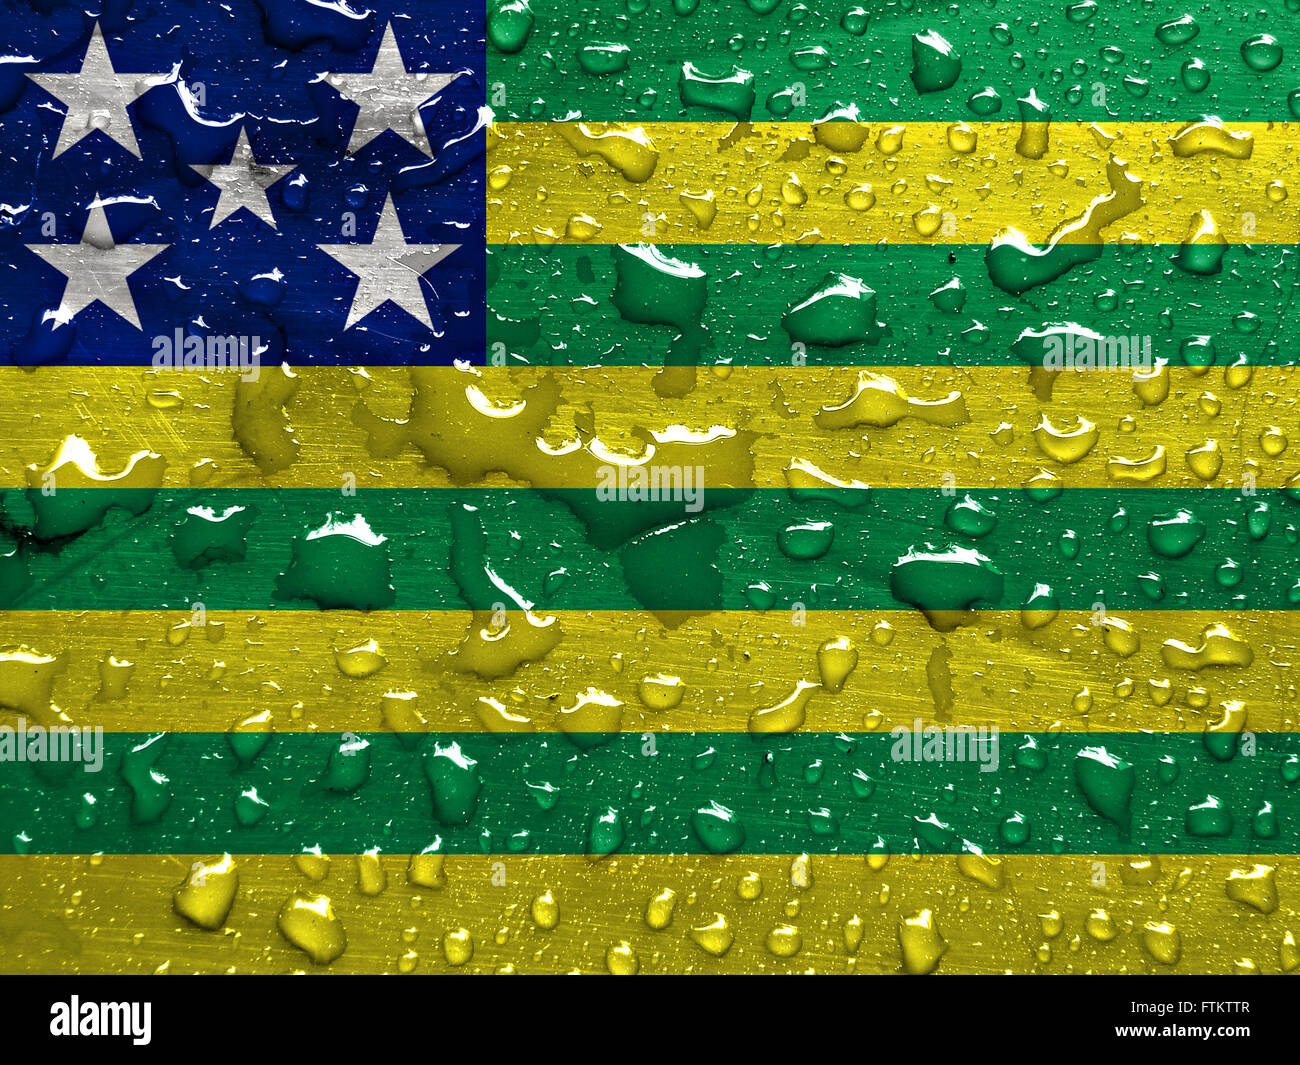 State of Goias flag with rain drops - Stock Image